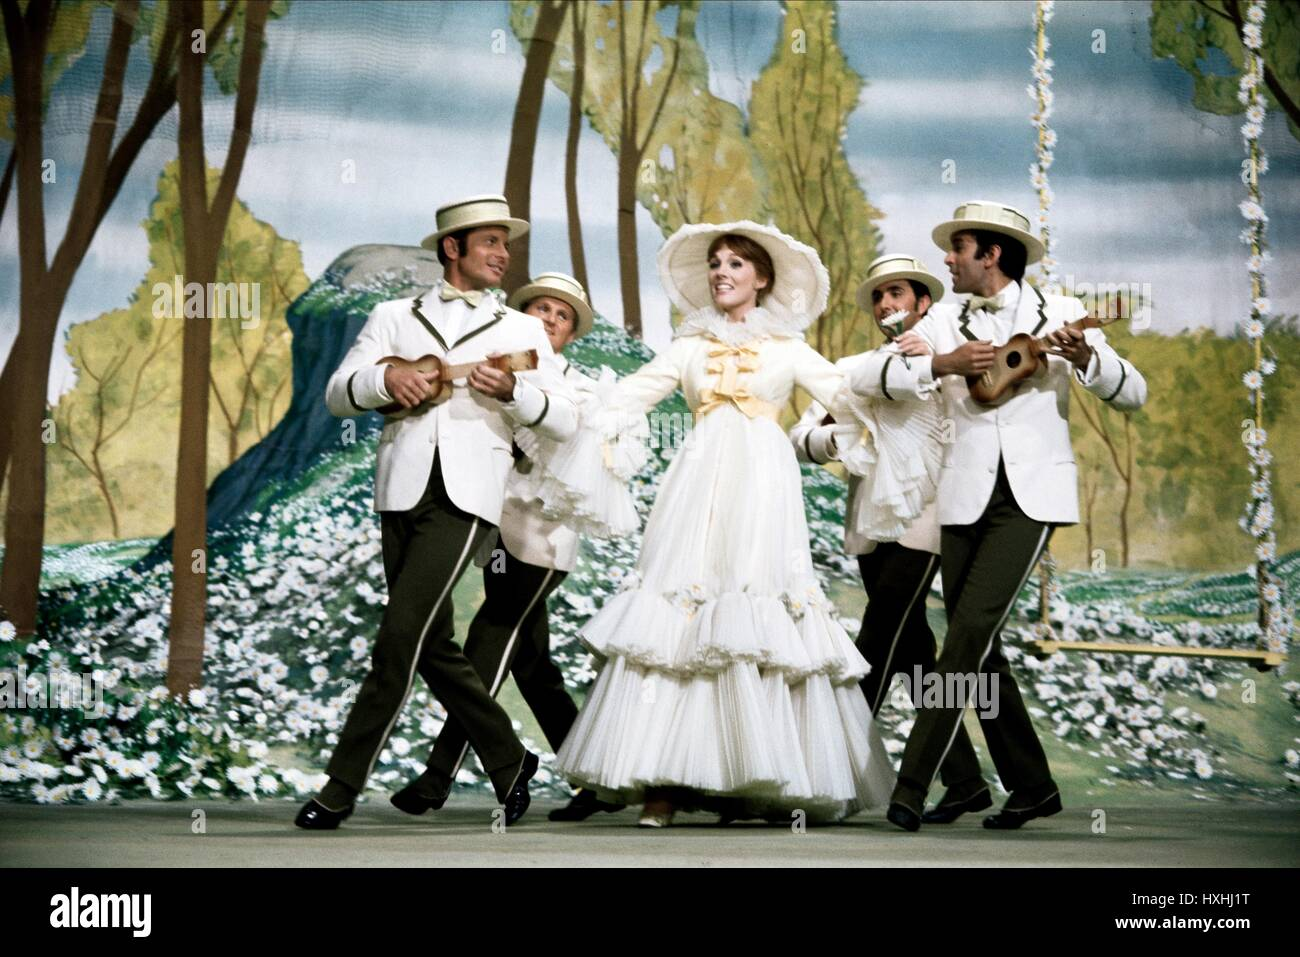 JULIE ANDREWS DARLING LILI (1970) - Stock Image